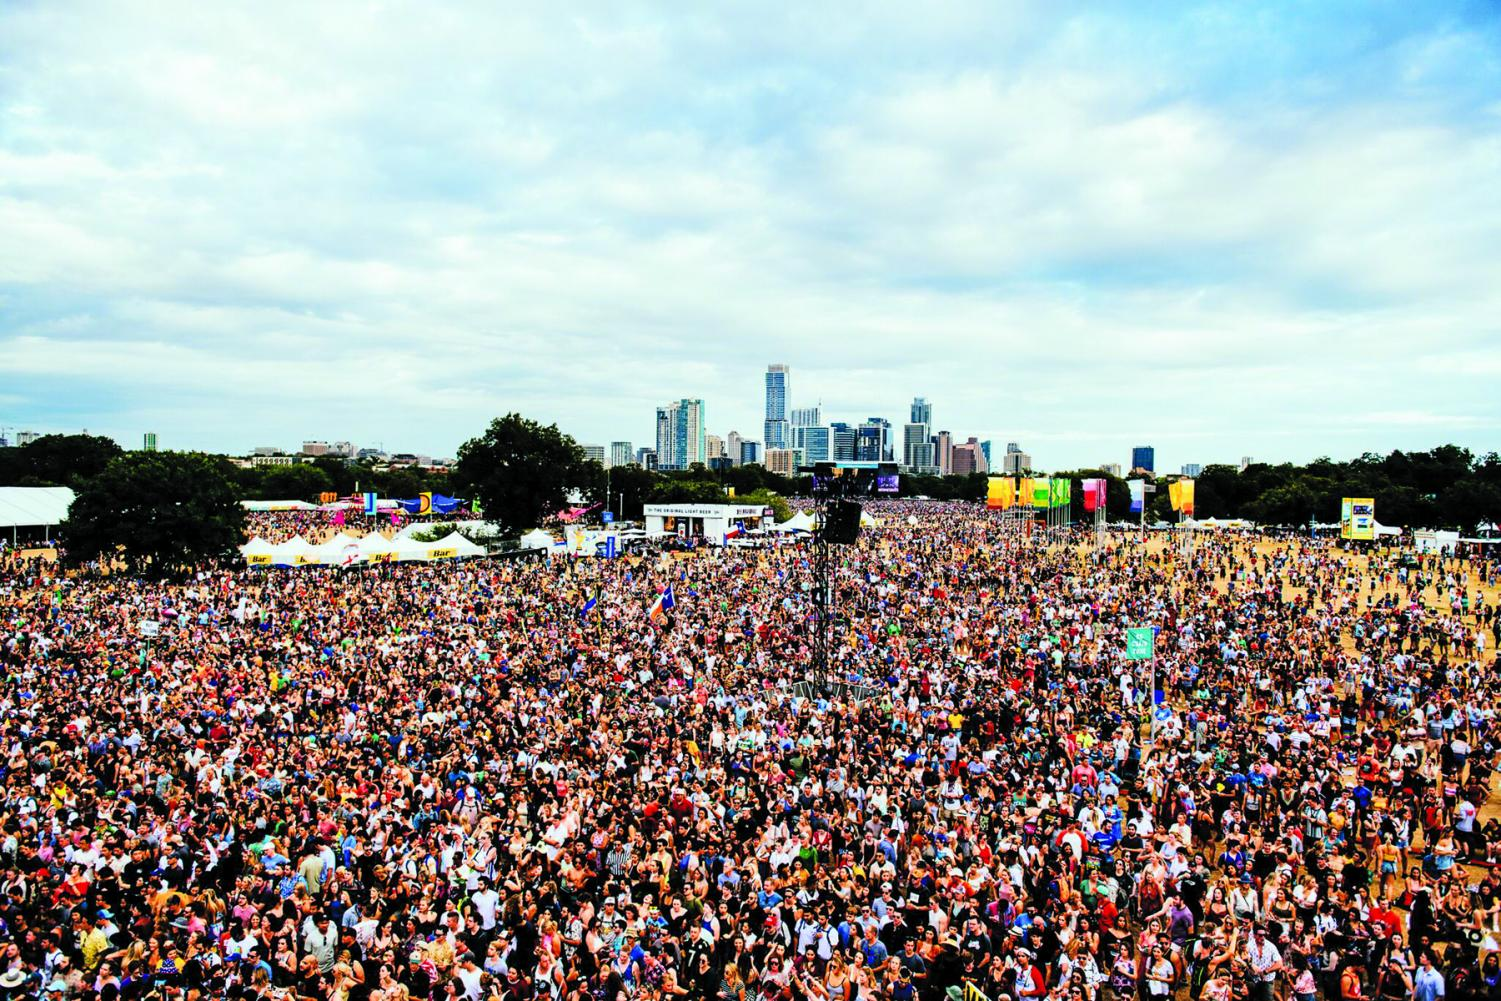 ACL Festival draws a crowd of approximately 450,000 people every year